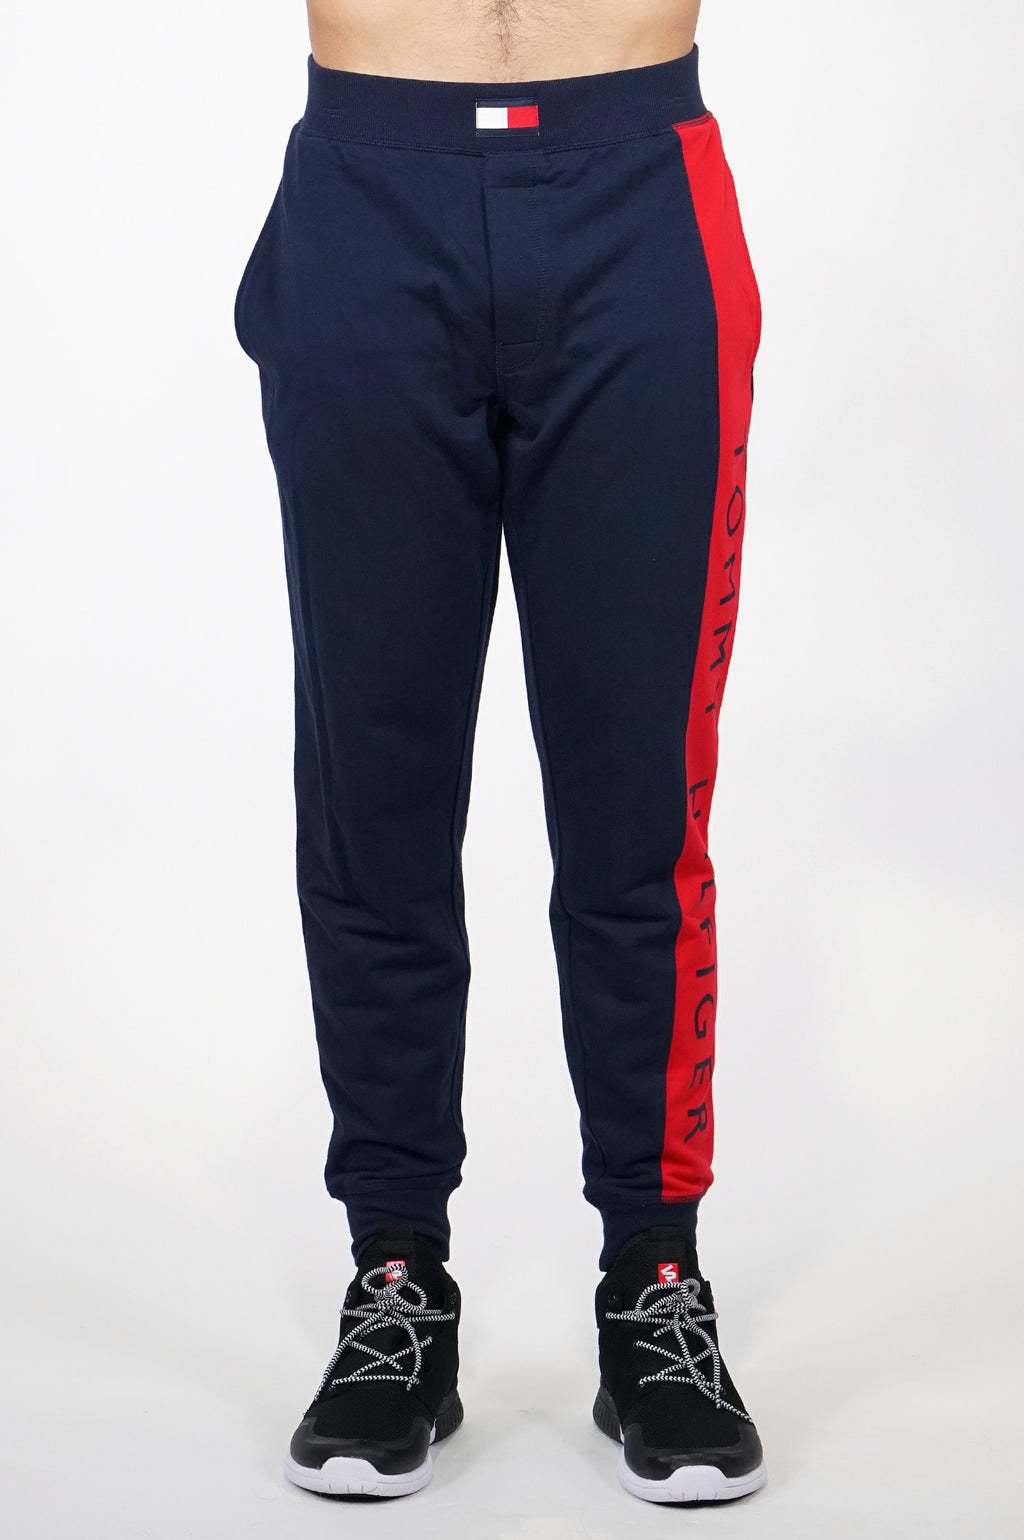 TOMMY HILFIGER LOUNGEWEAR MENS COLOR BLOCK PANTS